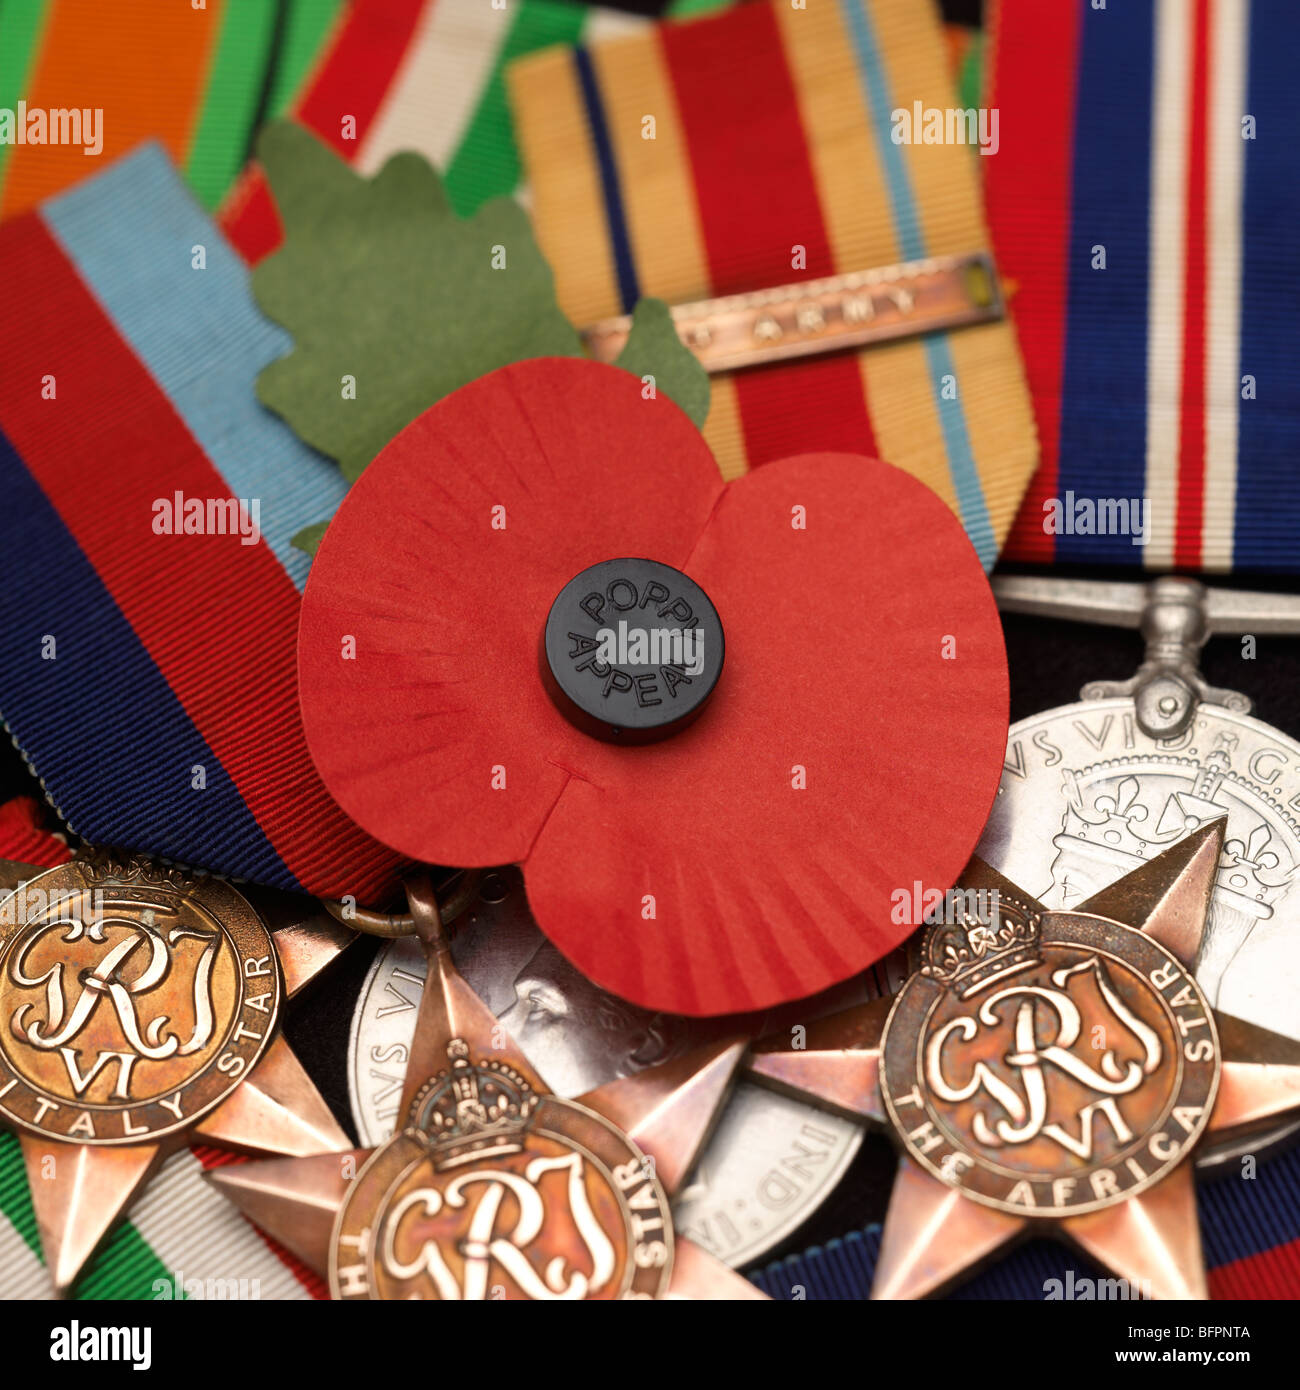 A poppy within a group of war medals - Stock Image